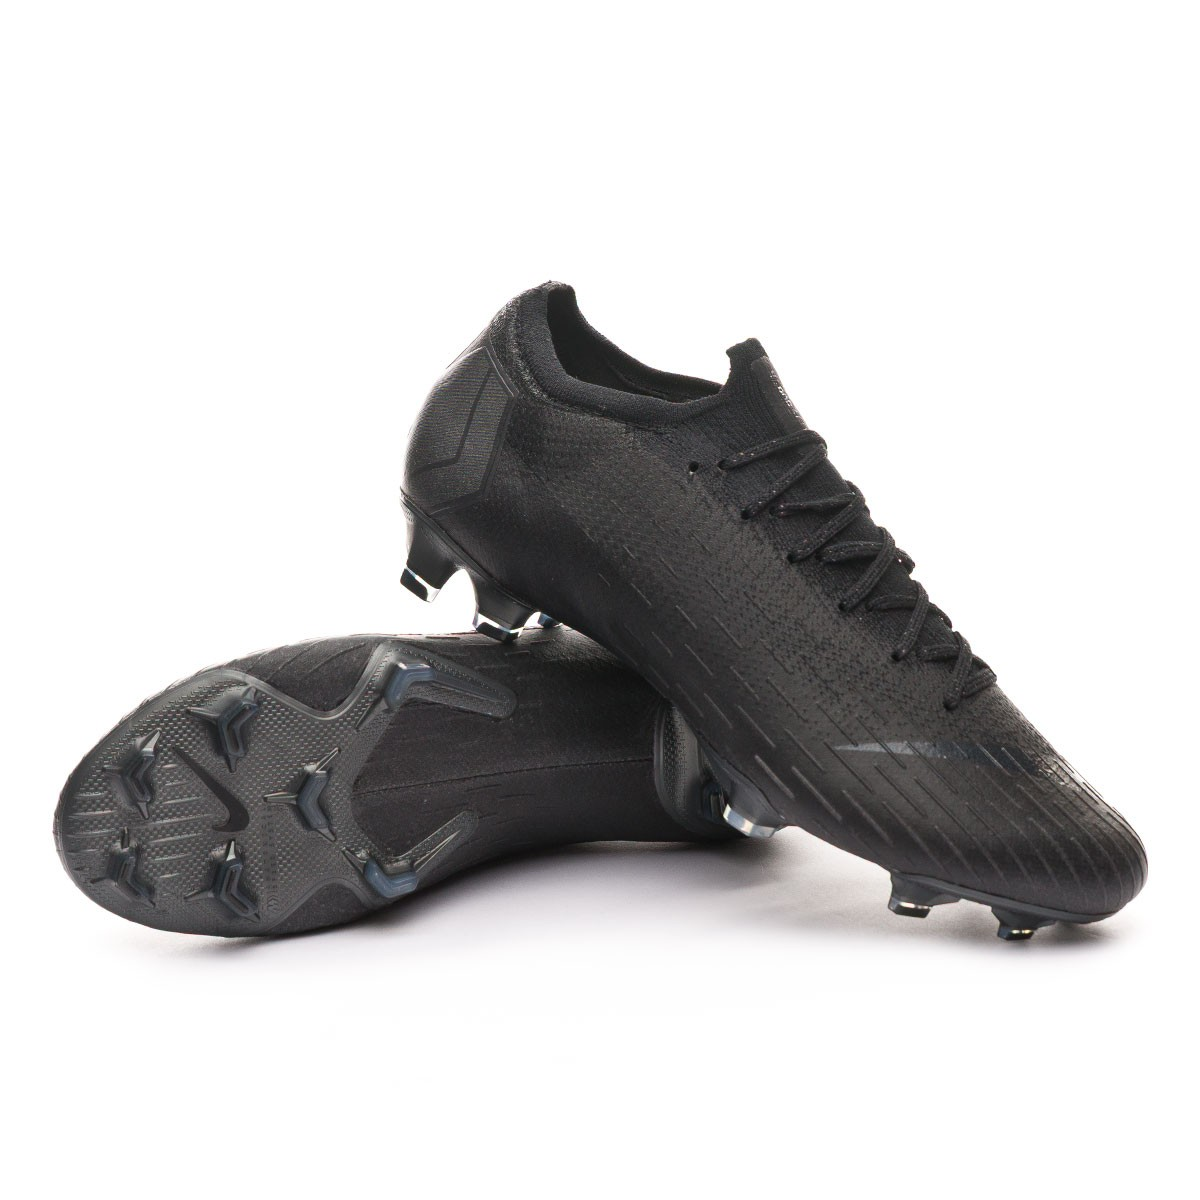 ... Bota Mercurial Vapor XII Elite FG Black. CATEGORY